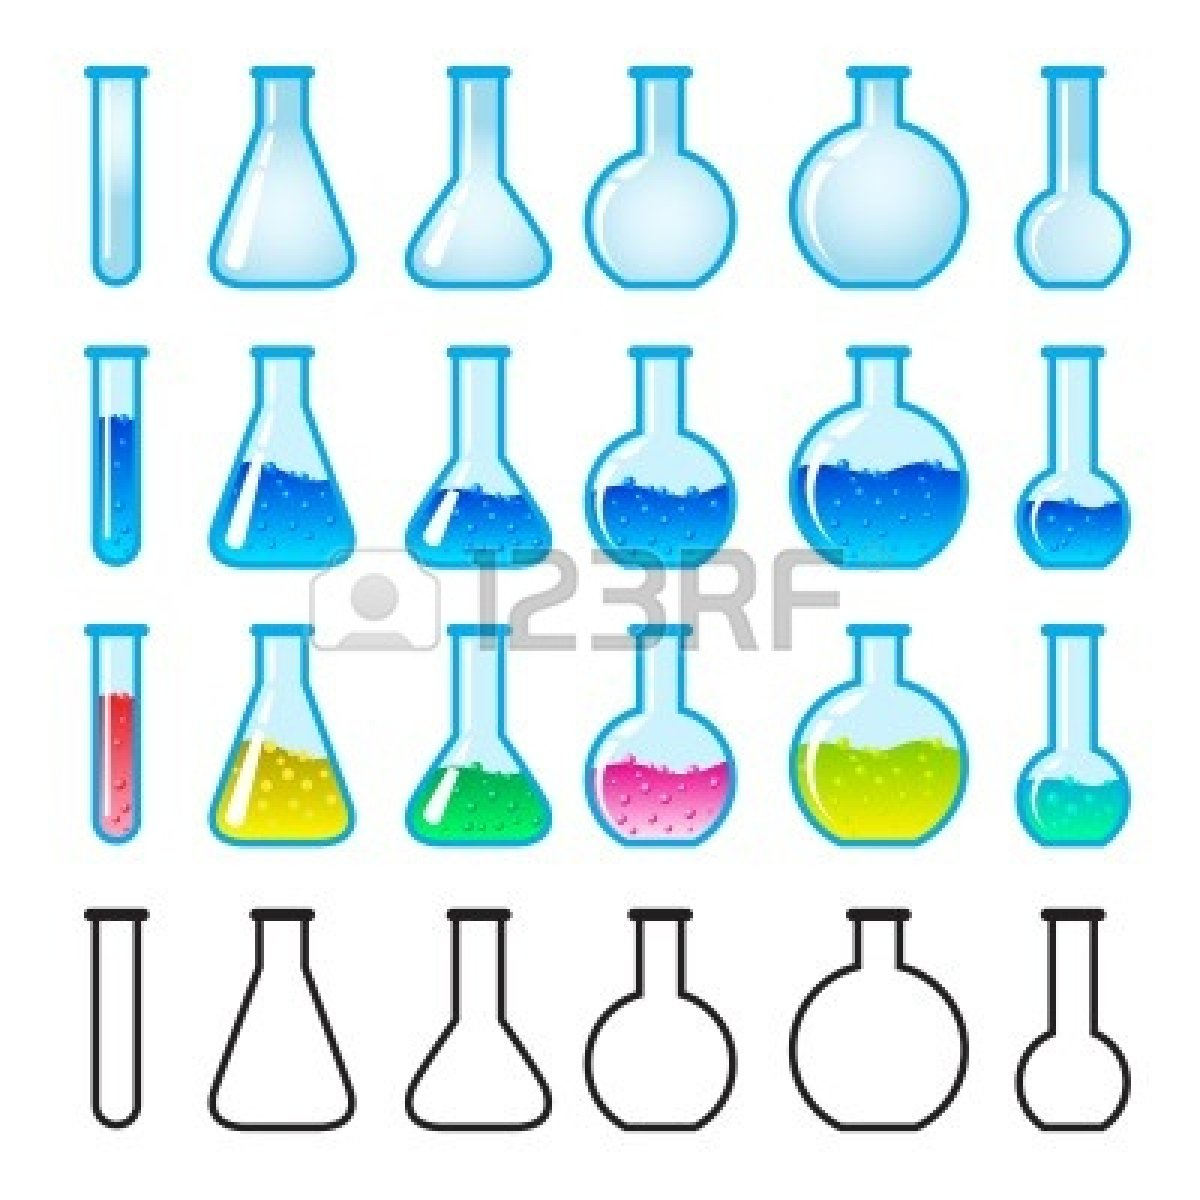 Science lab safety clipart 10259587 set of chemical science equipment